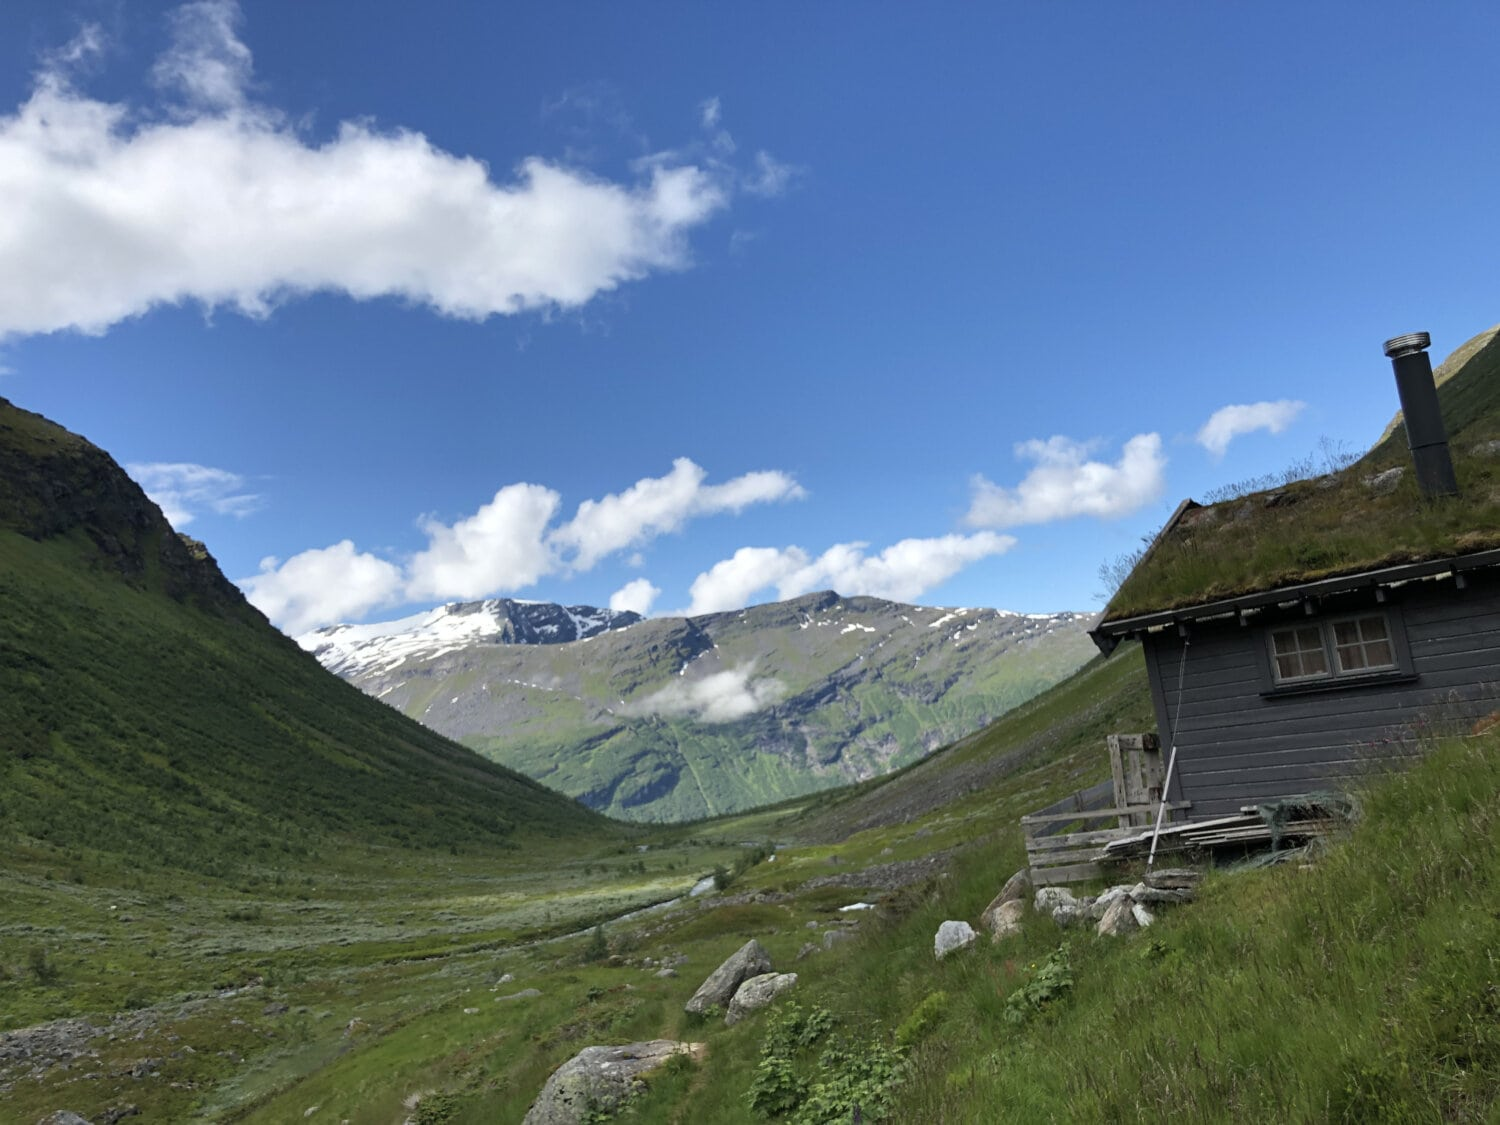 cottage, shed, valley, abandoned, bungalow, house, peak, mountain, high land, landscape